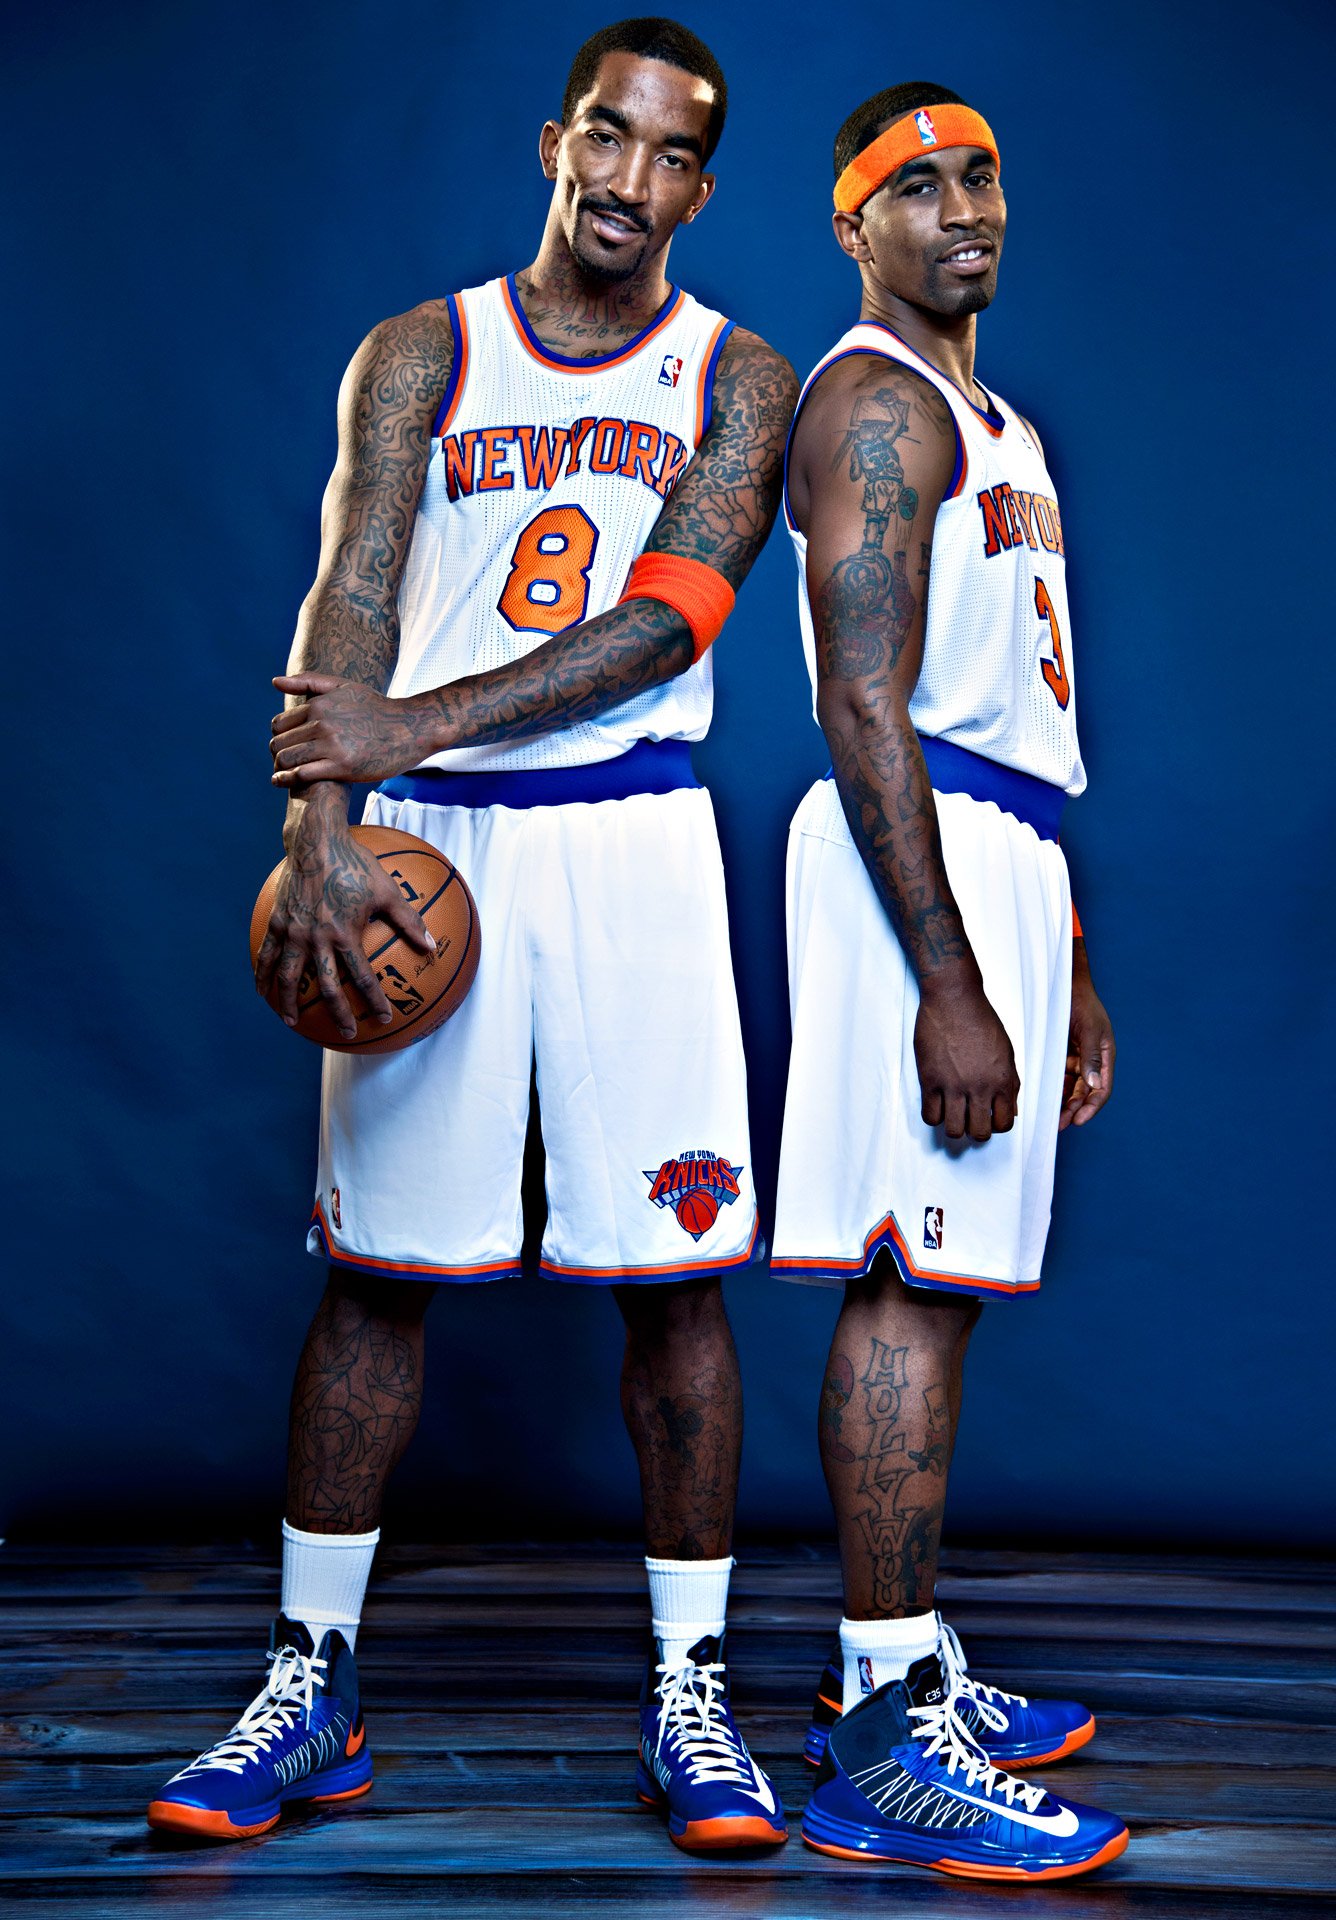 J.R. Smith, Chris Smith